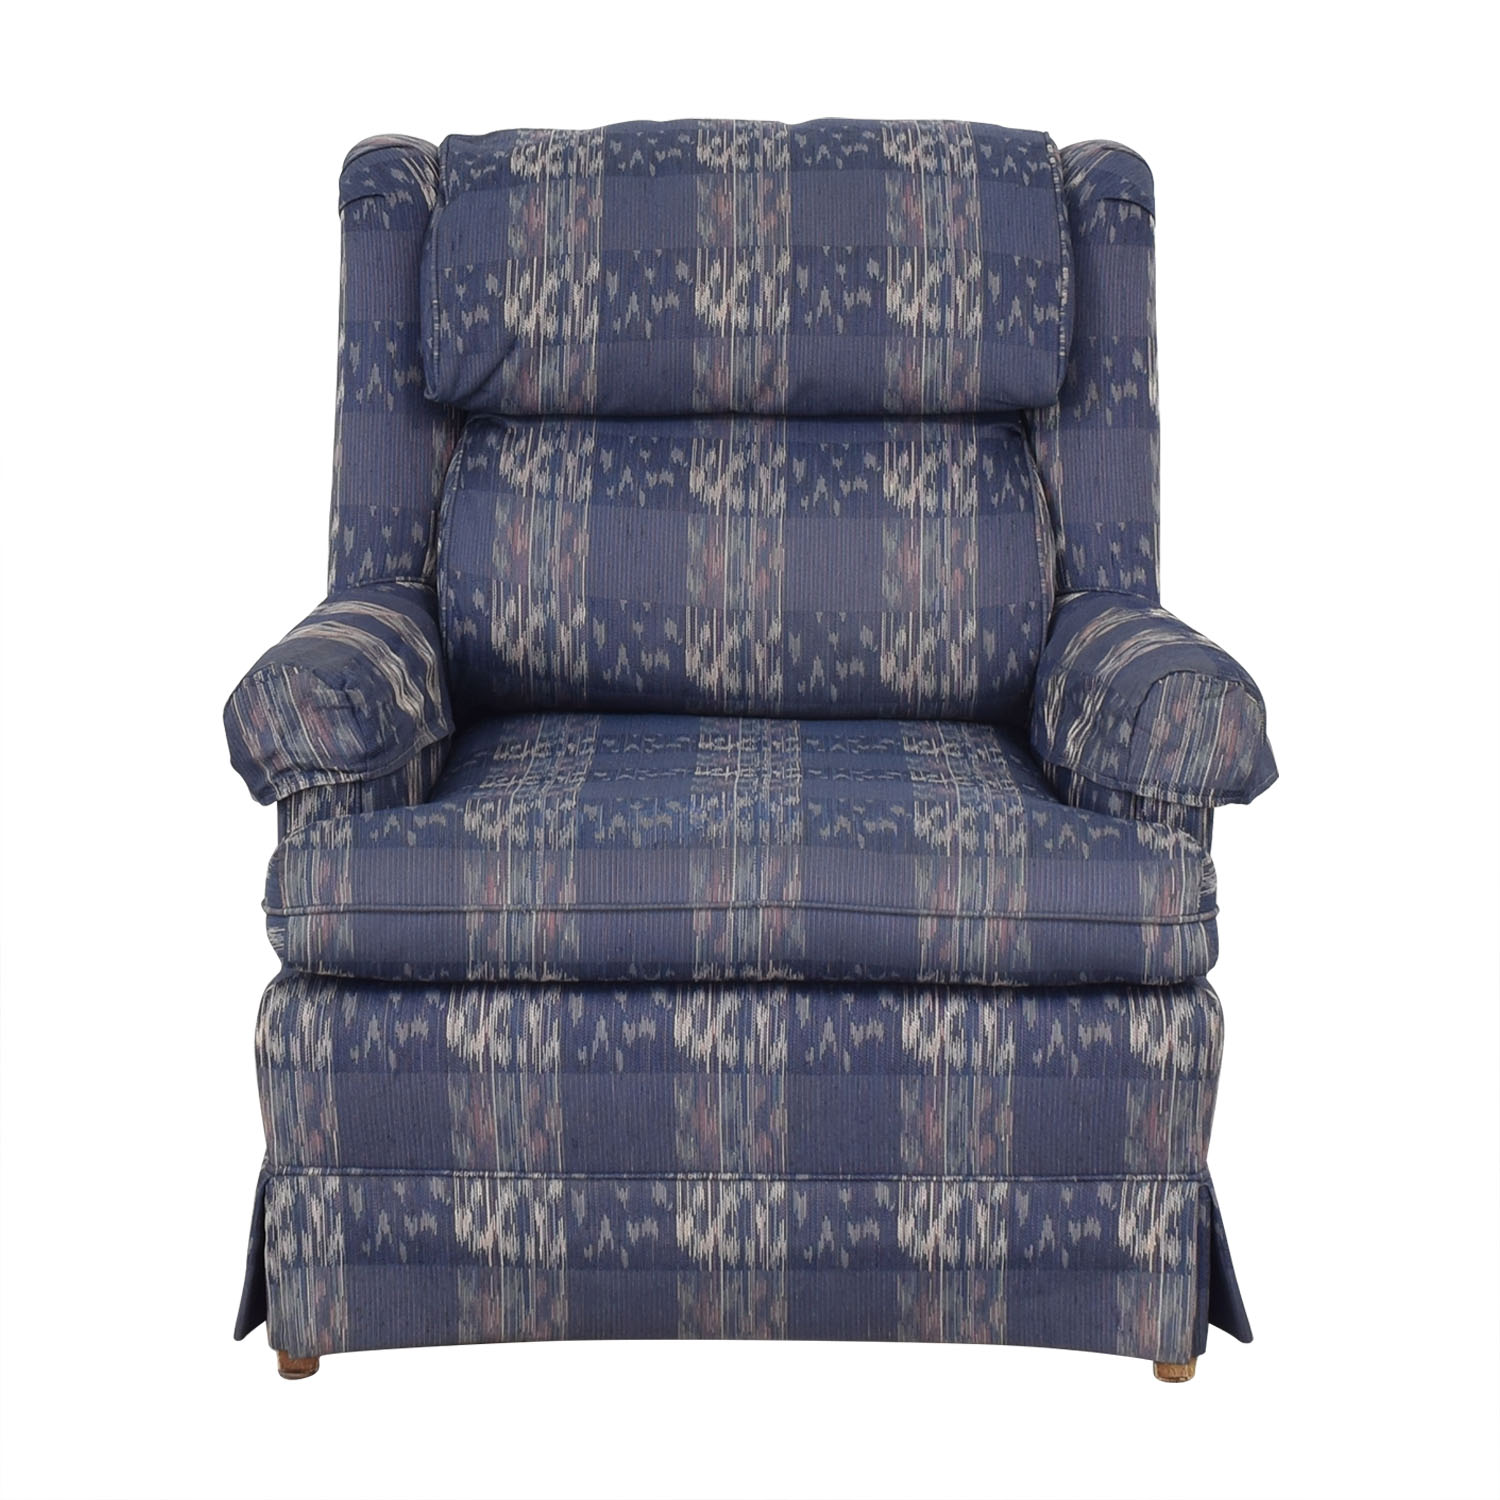 Ethan Allen Ethan Allen Accent Club Chair dimensions